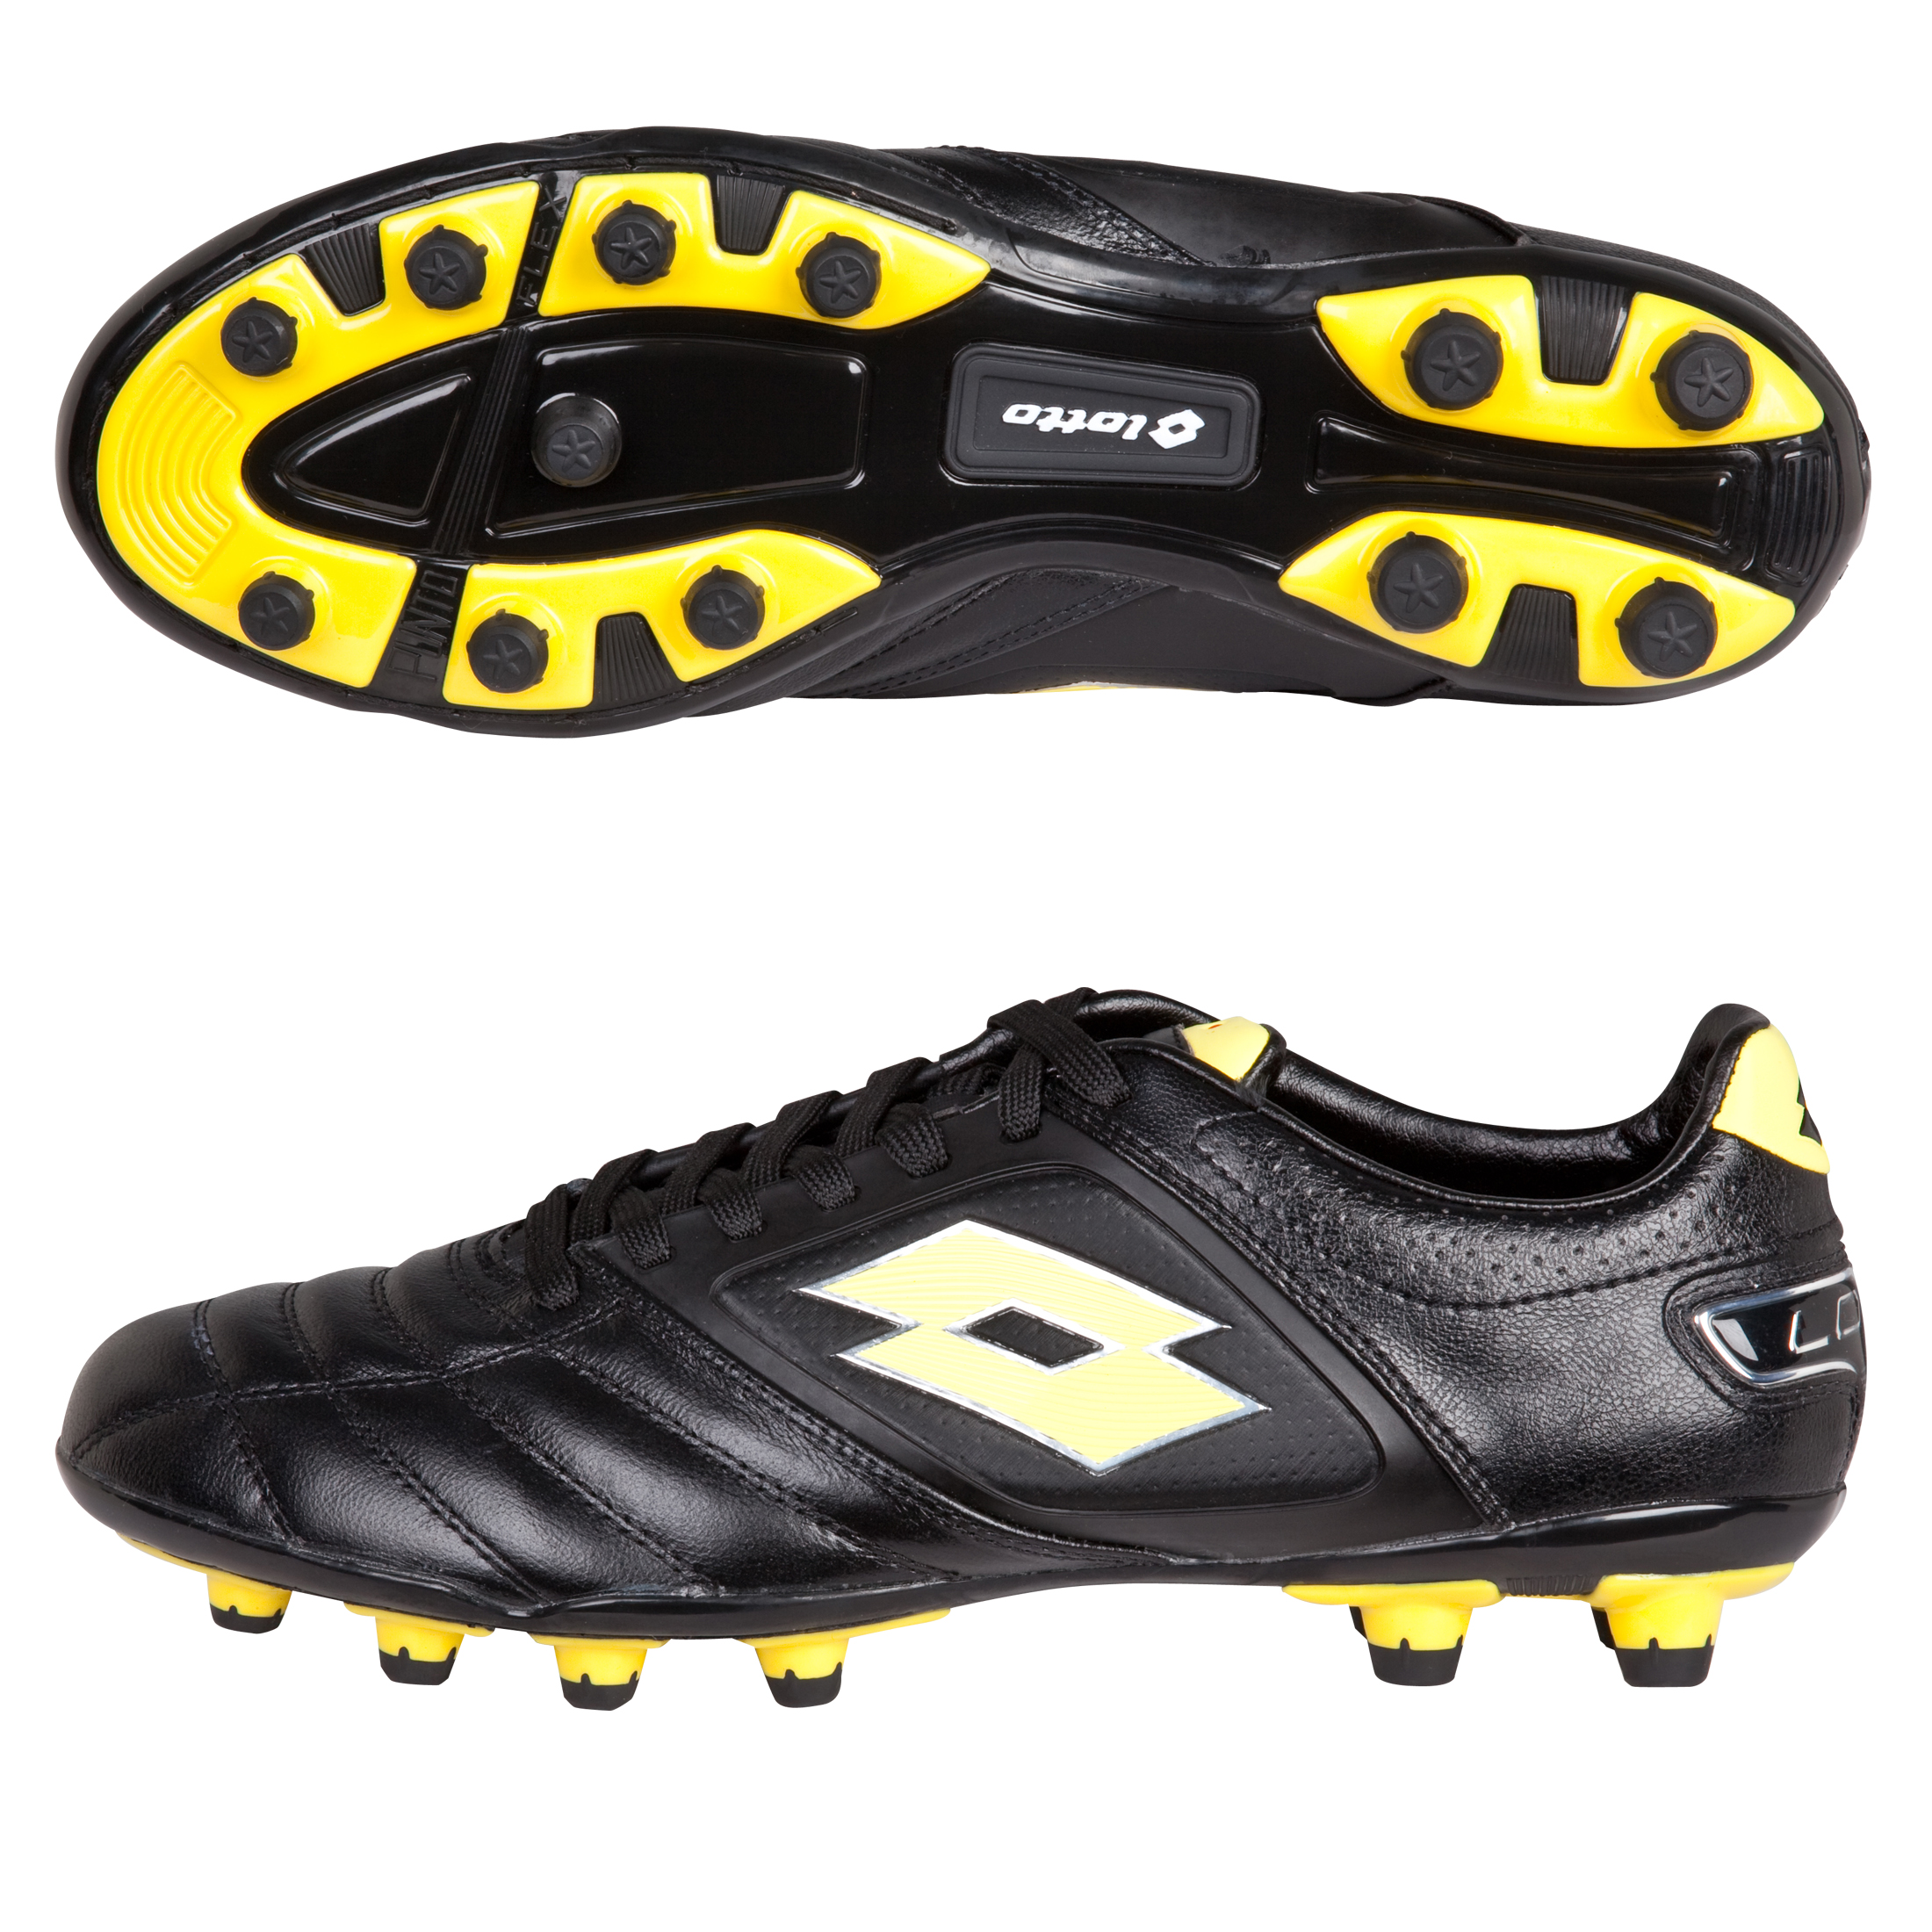 Lotto Stadio Potenza FG Black/Yellow Fluo